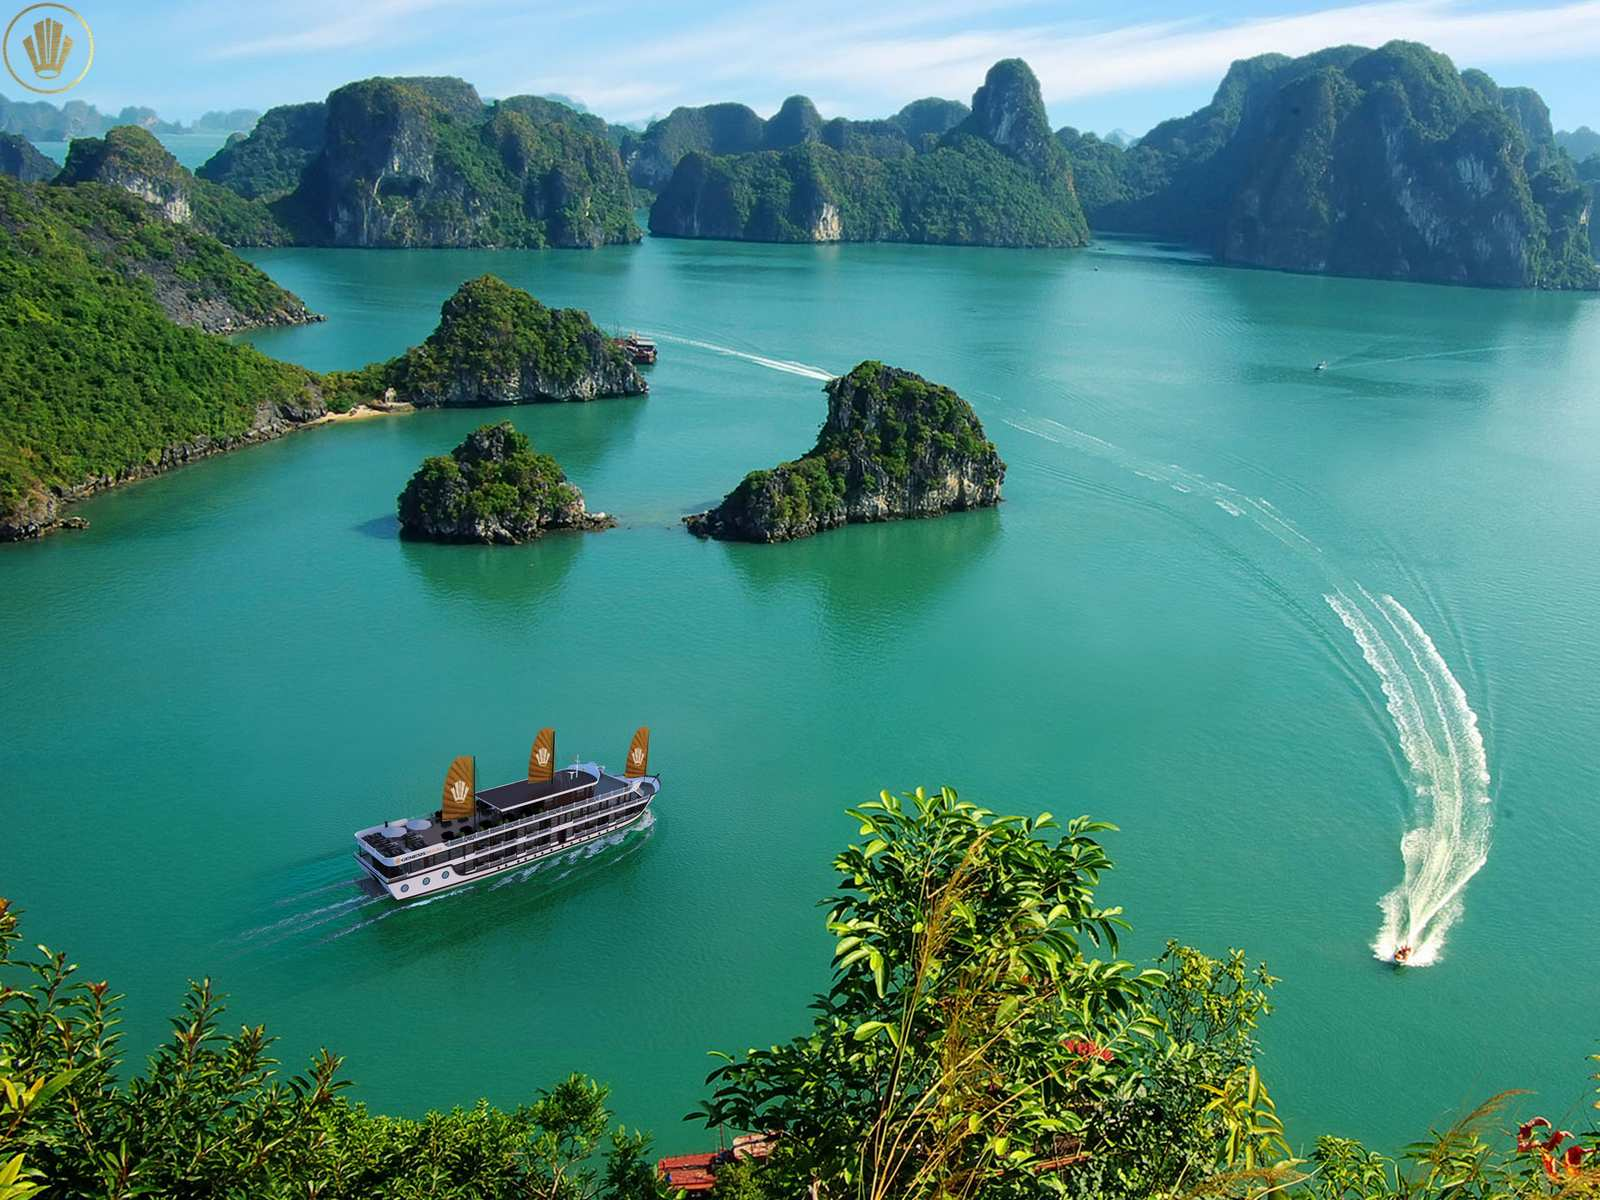 GENESIS REGAL CRUISE Ha Long Bay 3 Days 2 nights